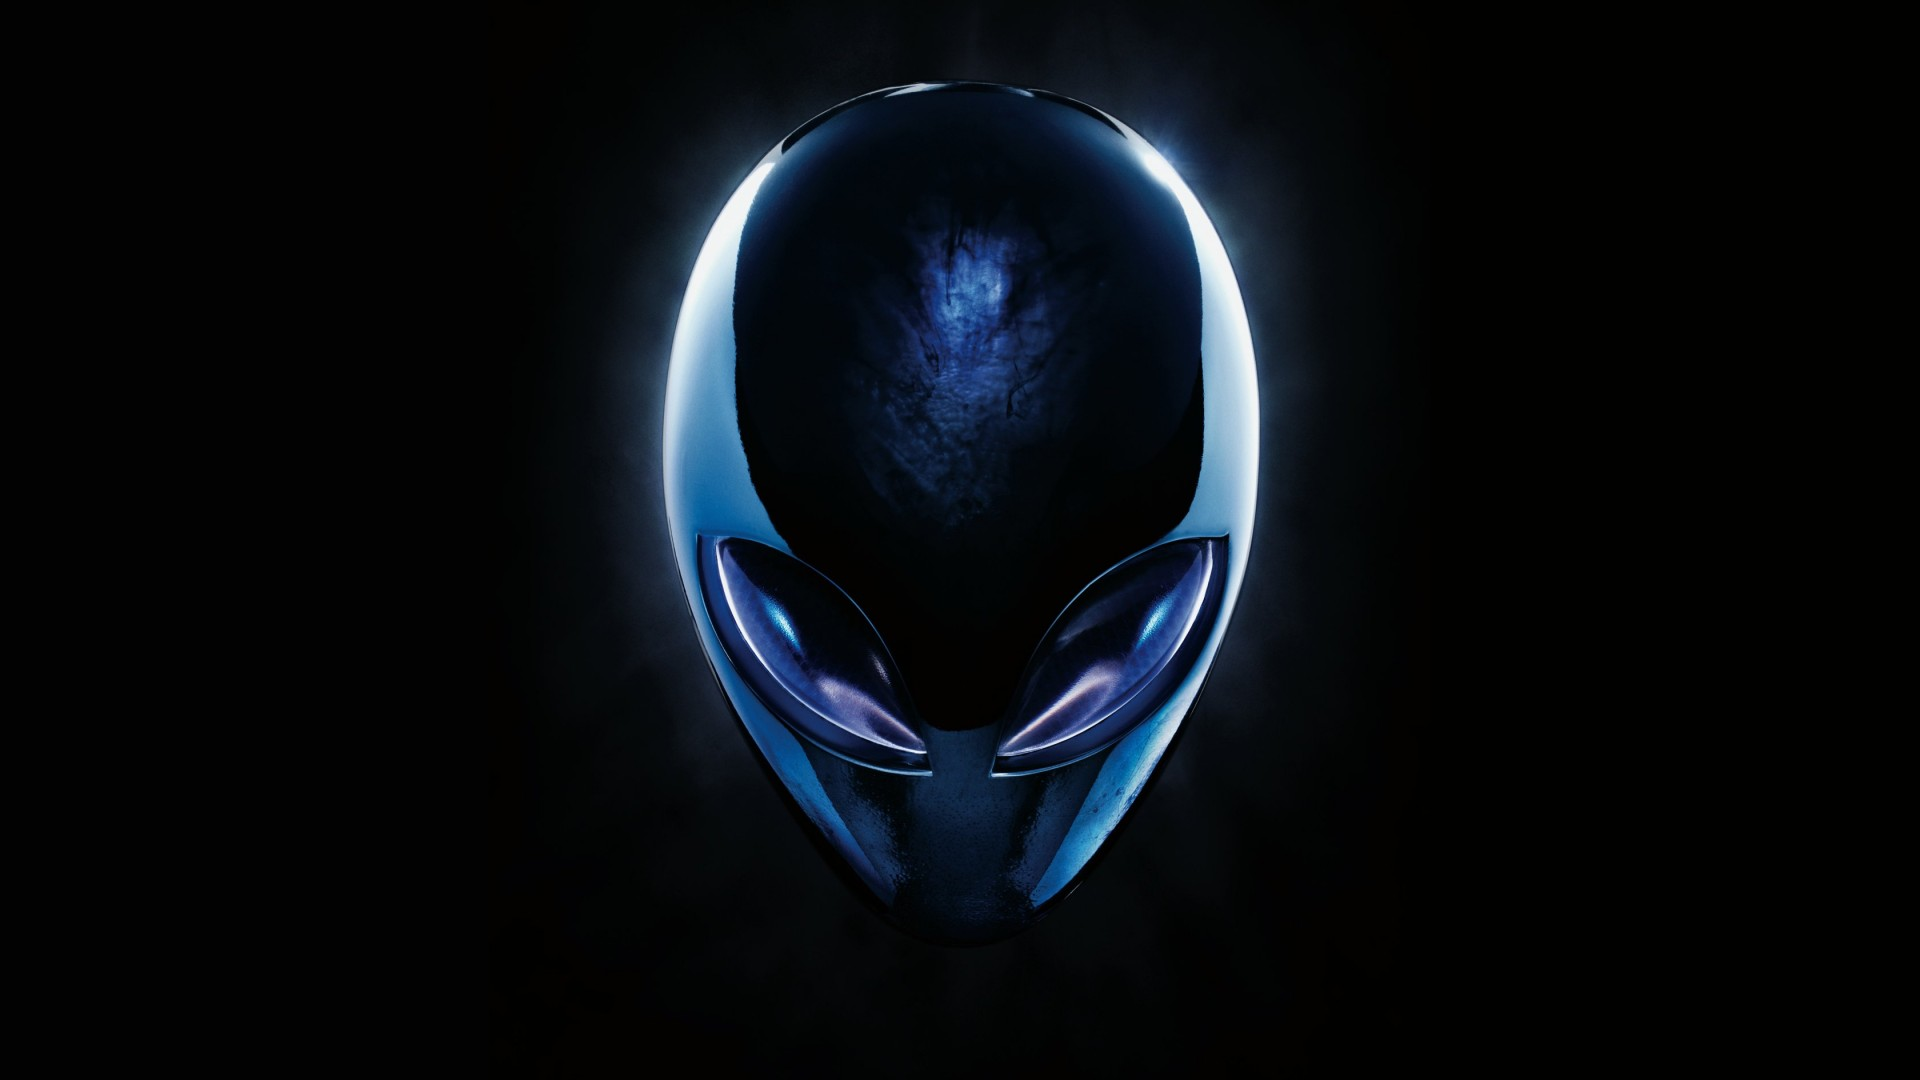 Alienware Blue Logo Wallpaper for Desktop 1920x1080